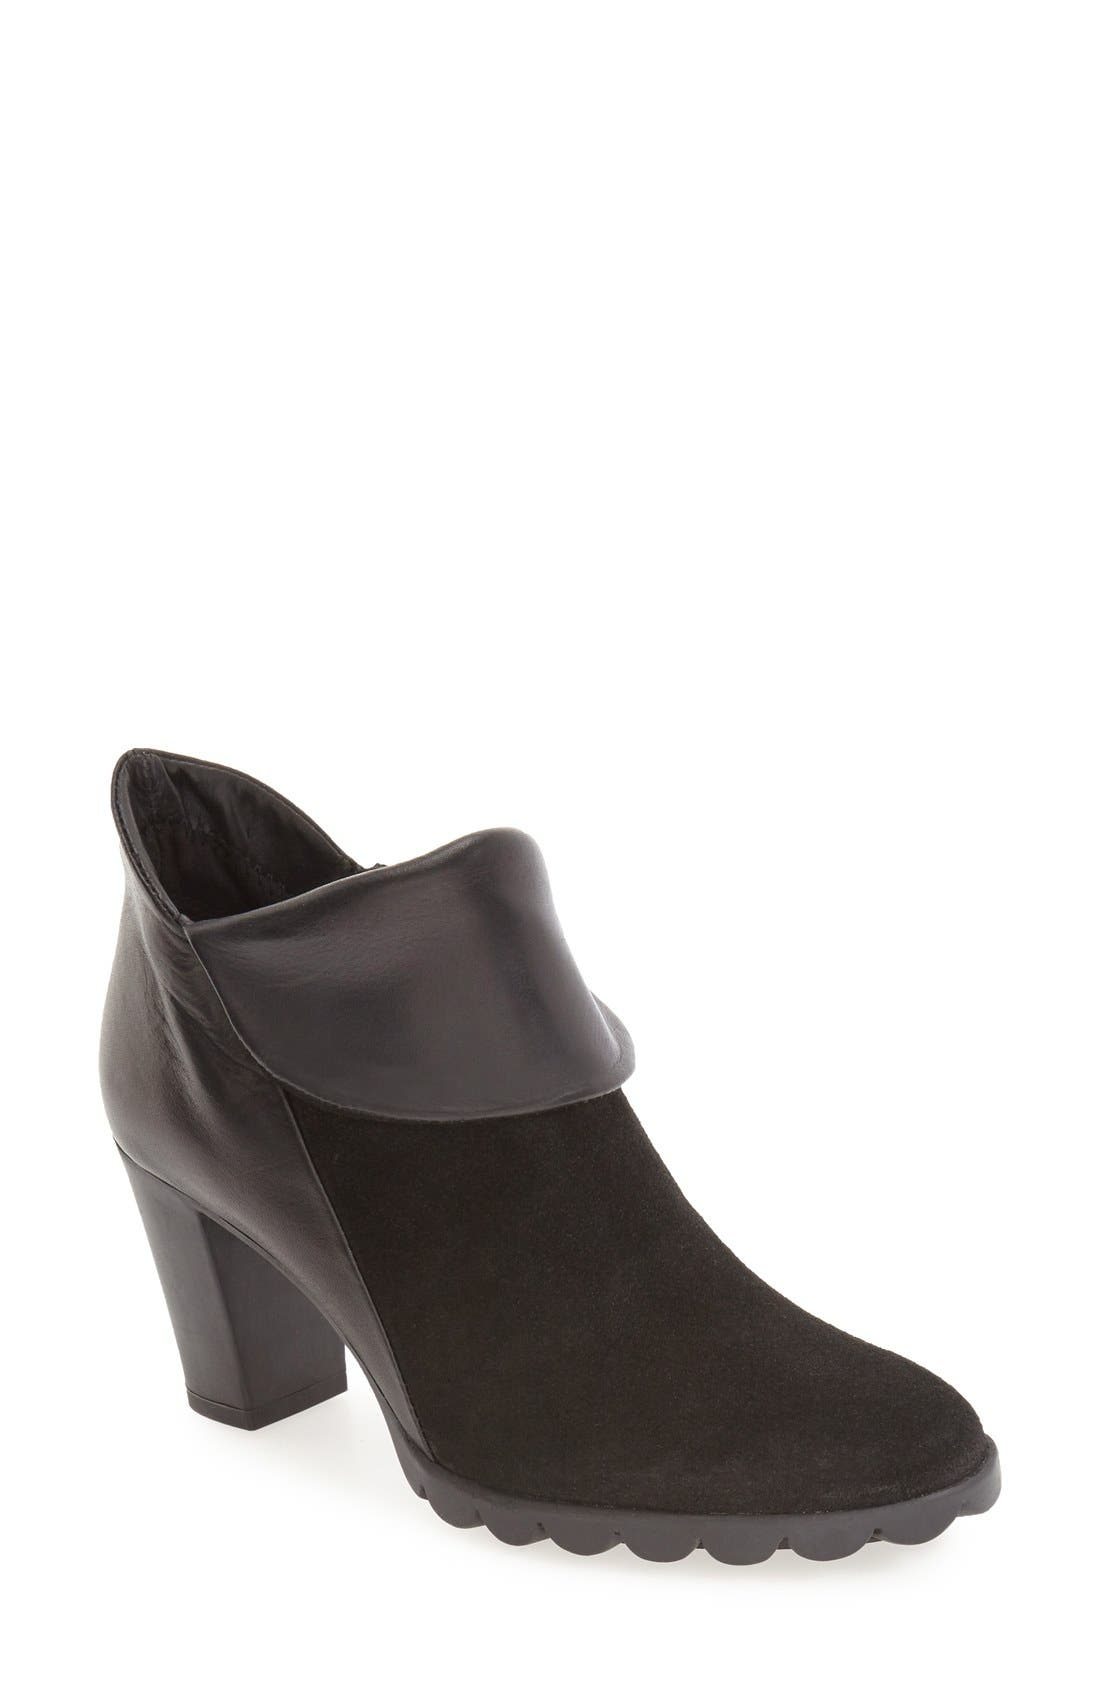 Alternate Image 1 Selected - The FLEXX 'Dipartment' Bootie (Women)